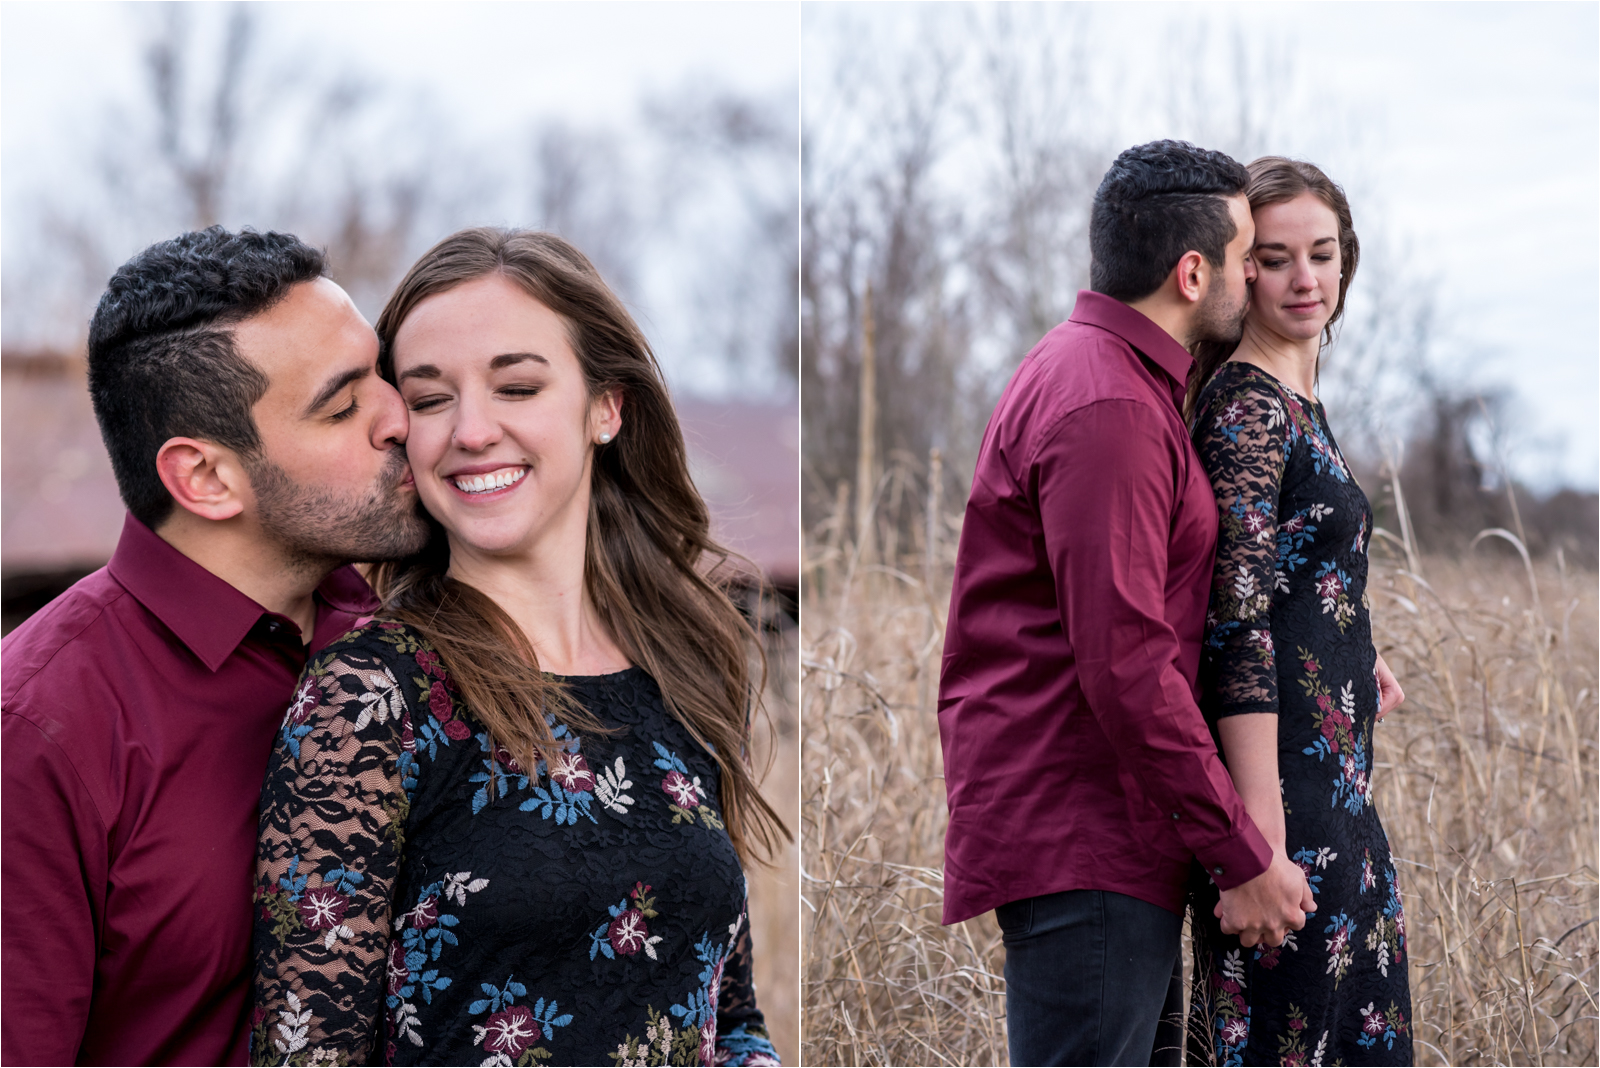 engagement-session-belle-isle-james-river-richmond-city-municipal-park-rva-virginia-va-maroon-shirt-flower-floral-dress-fiance-man-woman-bridge-cityscape-kissing-landscape-focus-on-joy-photography